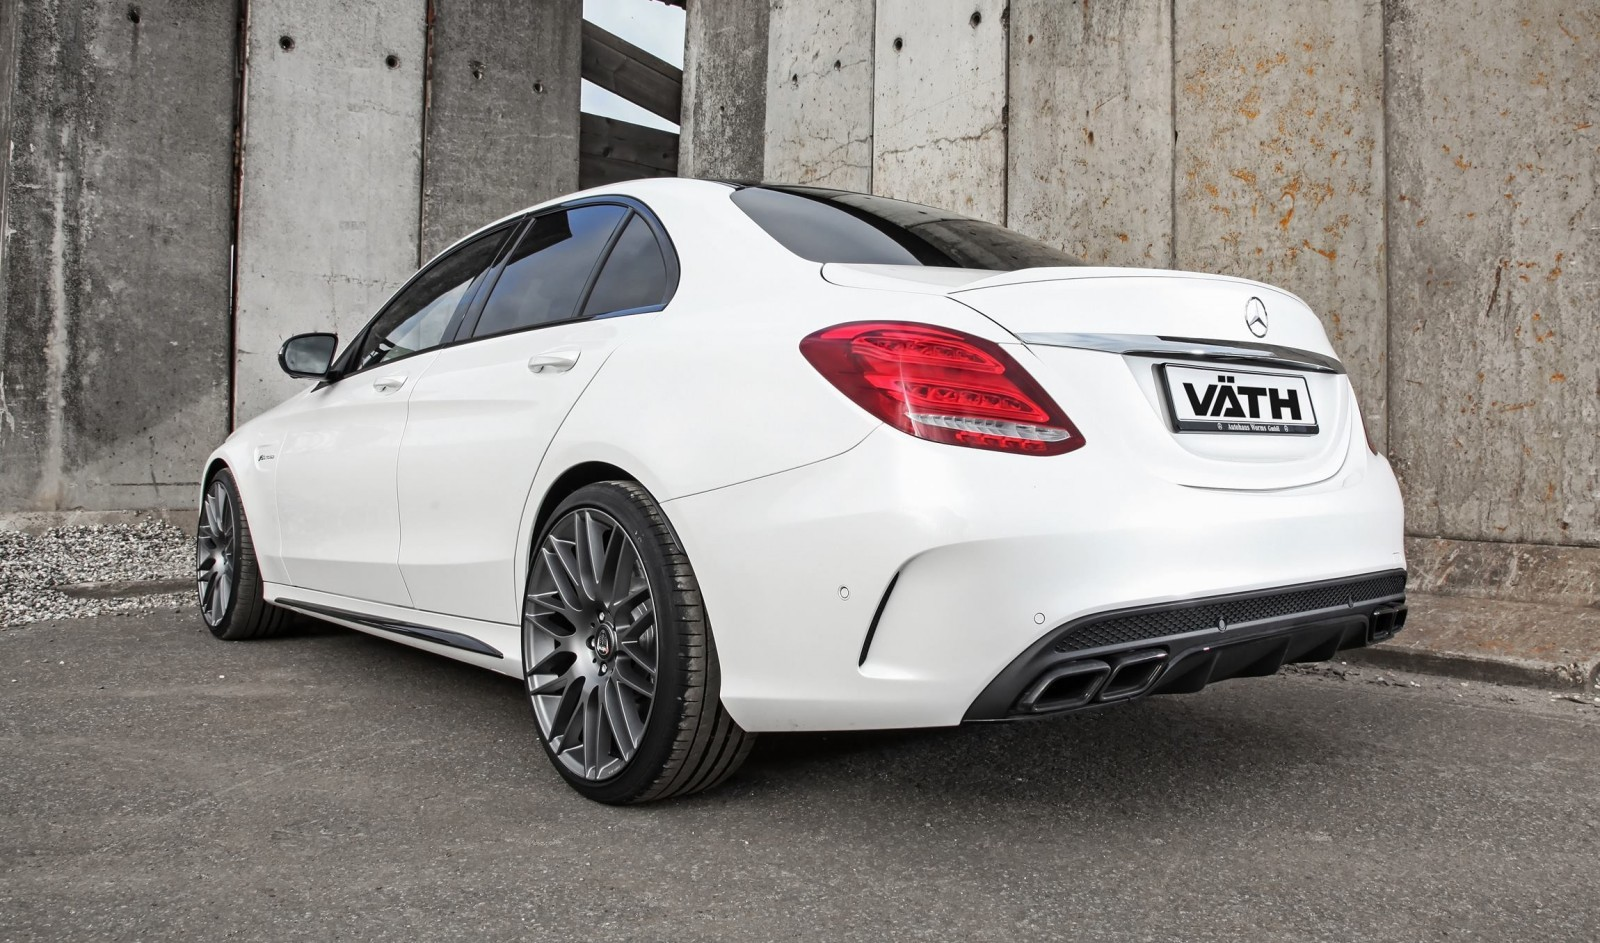 680hp 199mph 2016 v th mercedes amg c63 rs delivers massive performance gains for minimal cash. Black Bedroom Furniture Sets. Home Design Ideas